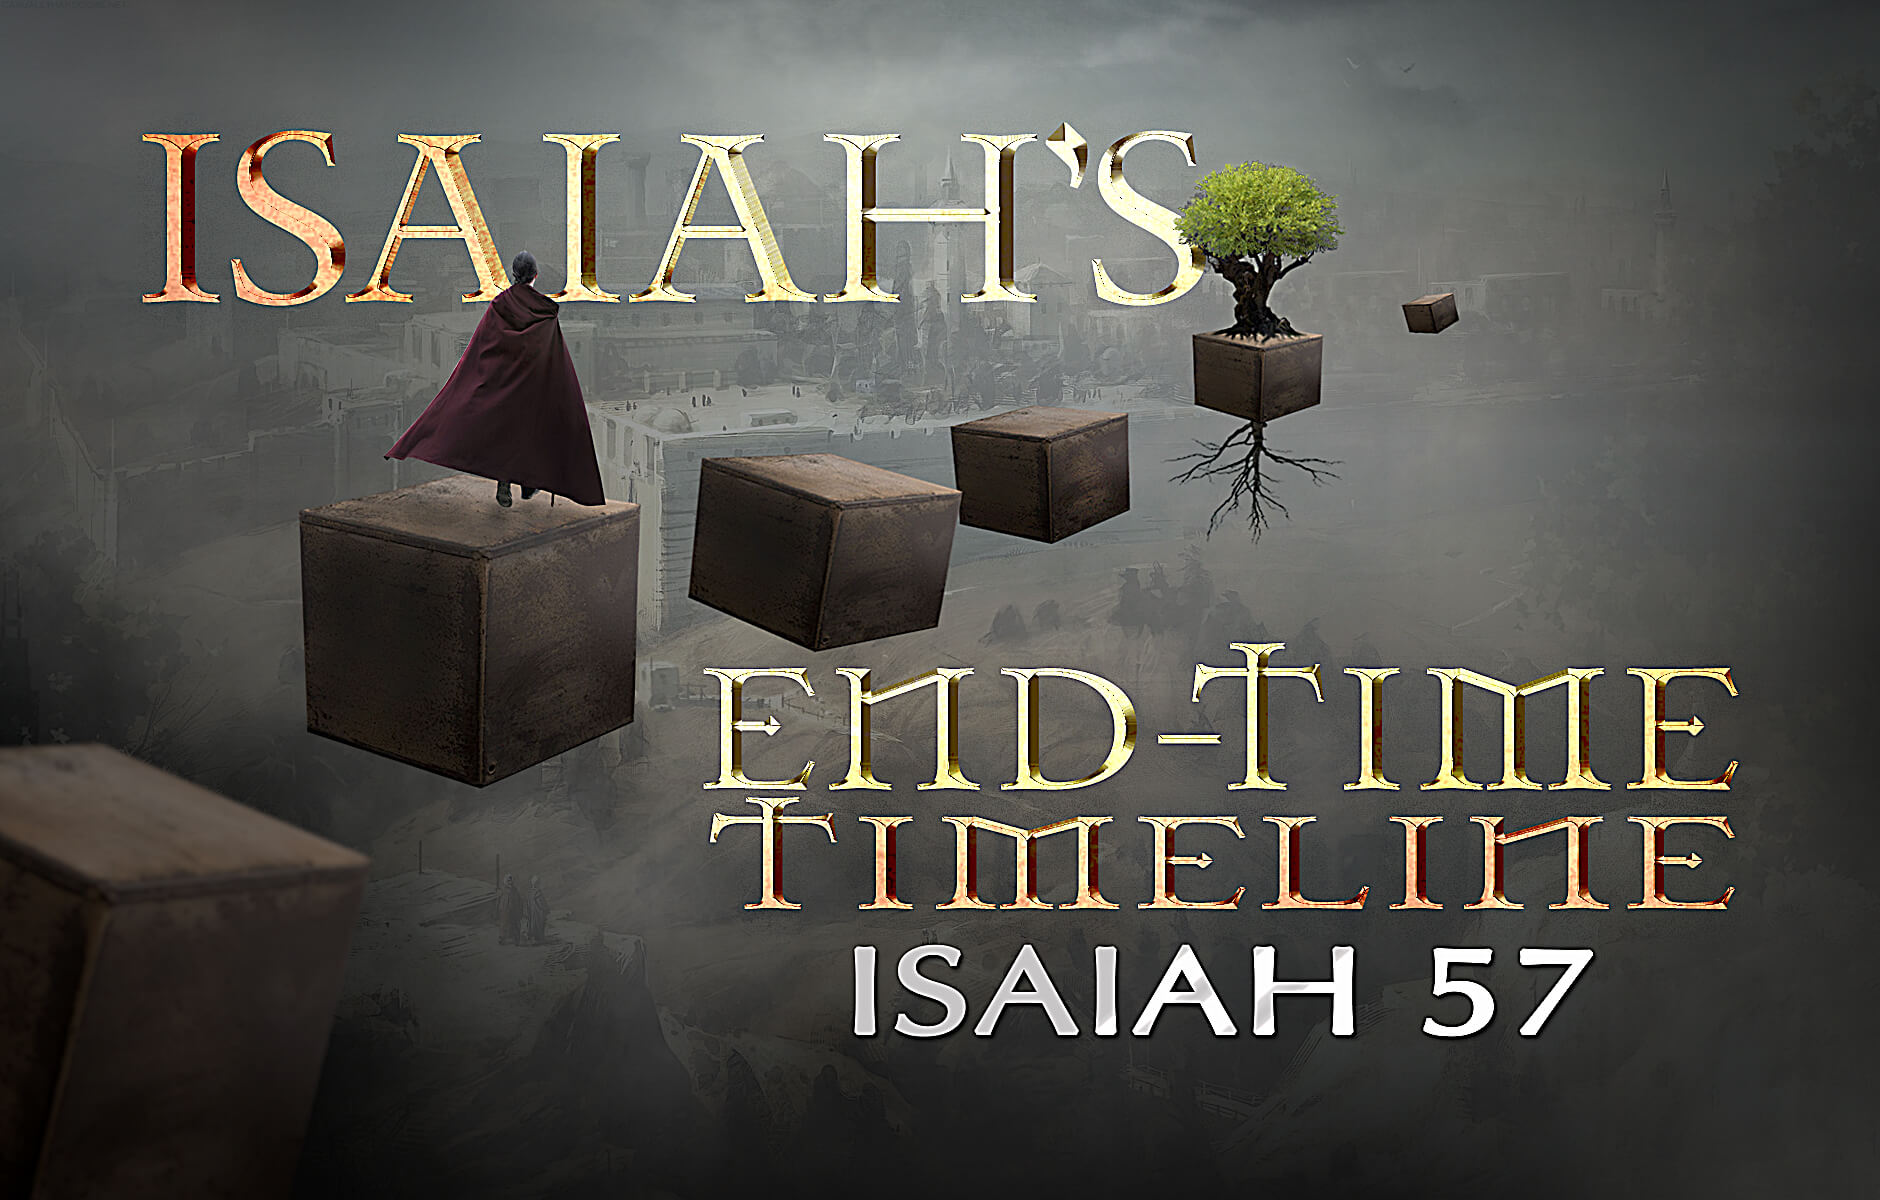 Isaiah's End-time Timeline Chapter 57